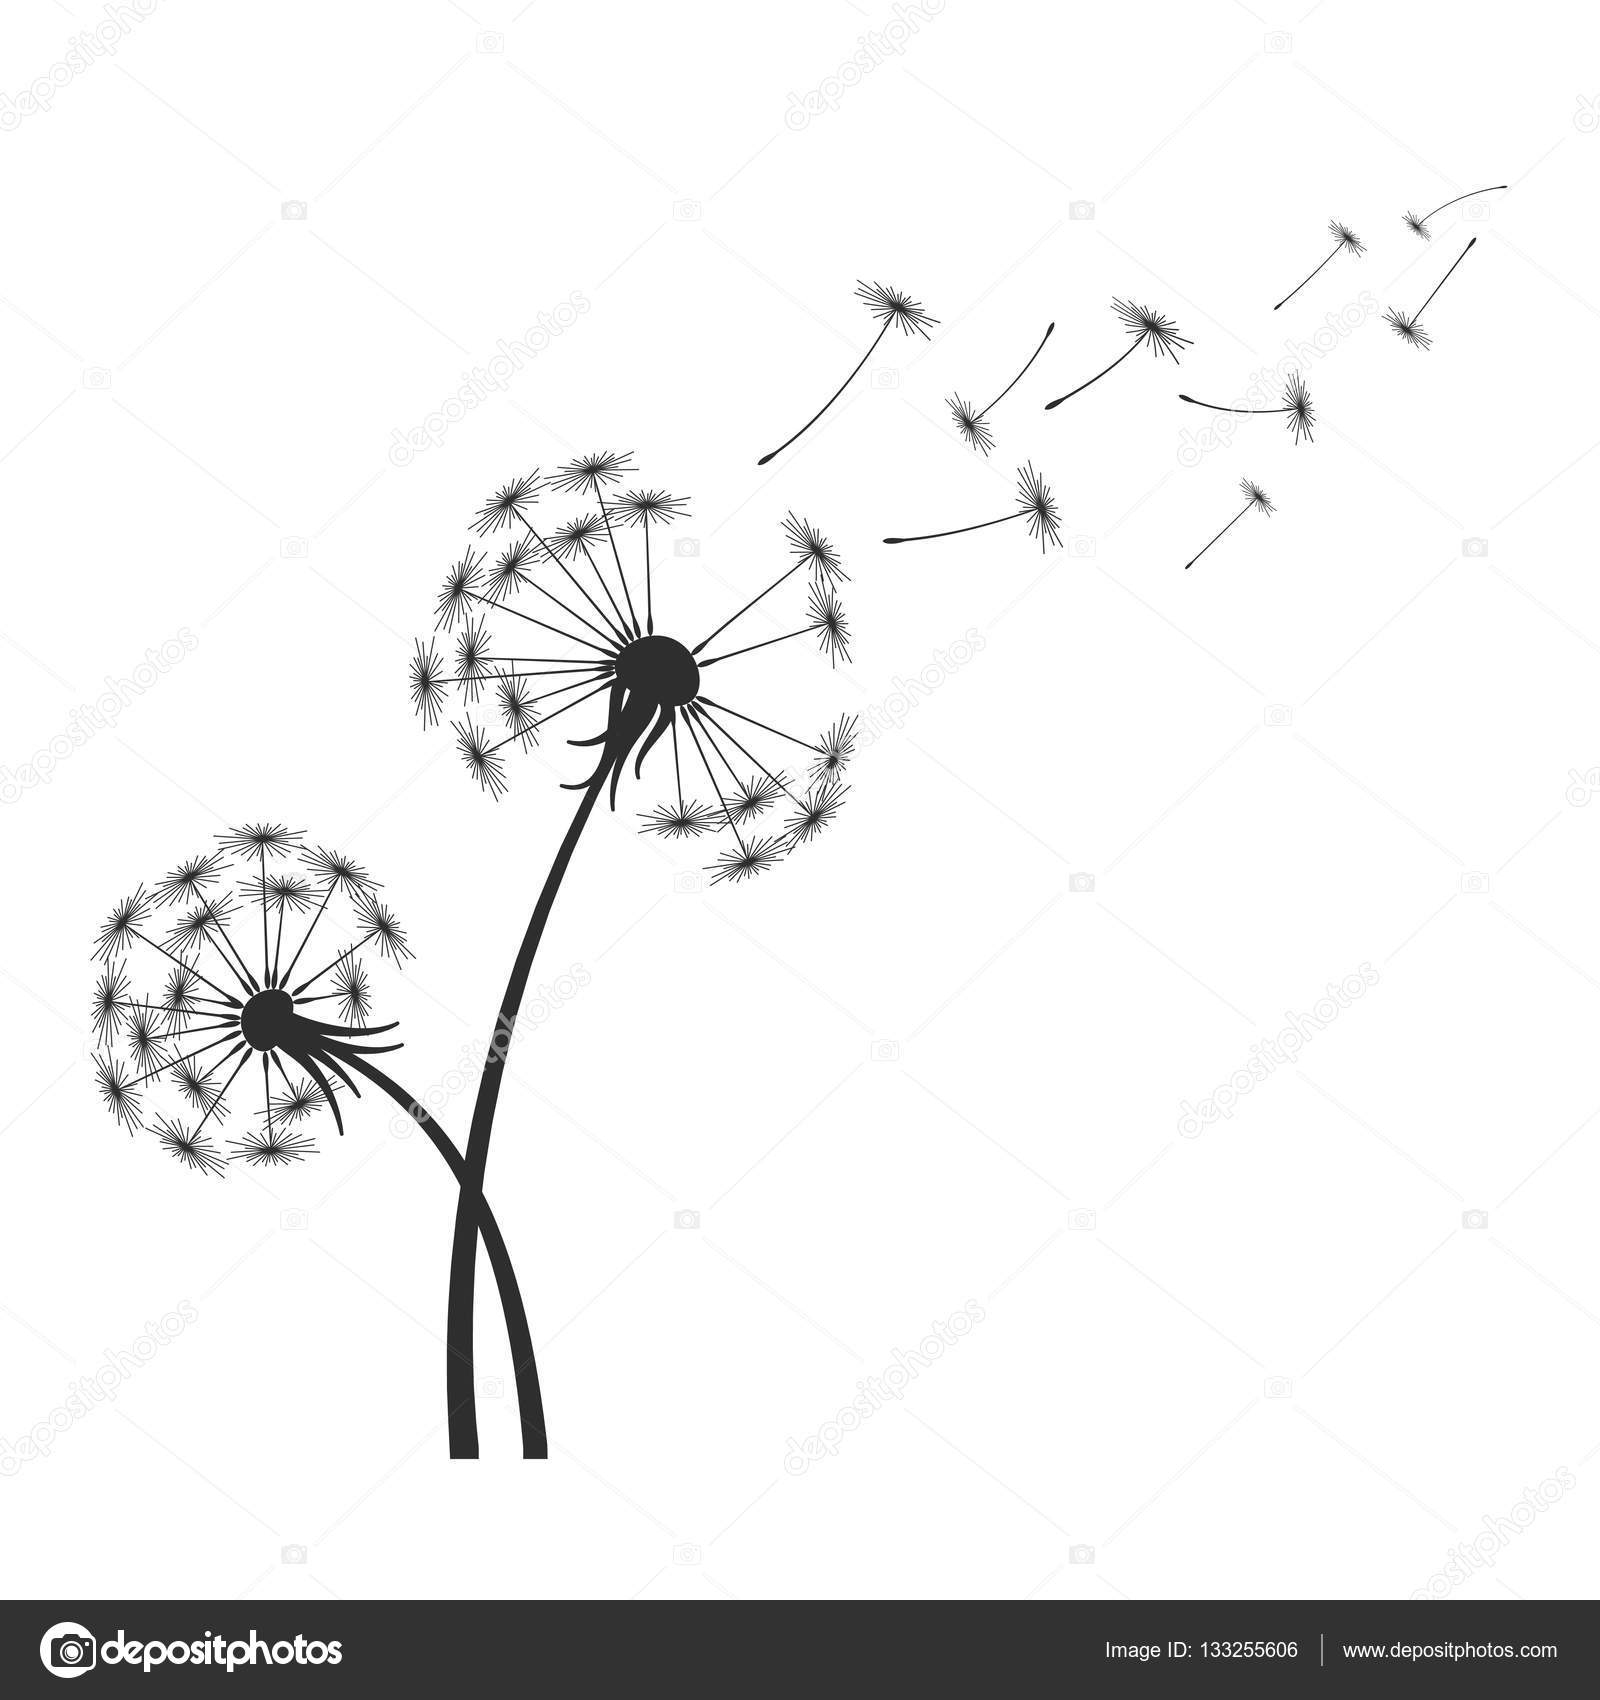 dandelions blowing the wind coloring pages | Black dandelion silhouette with wind blowing flying seeds ...